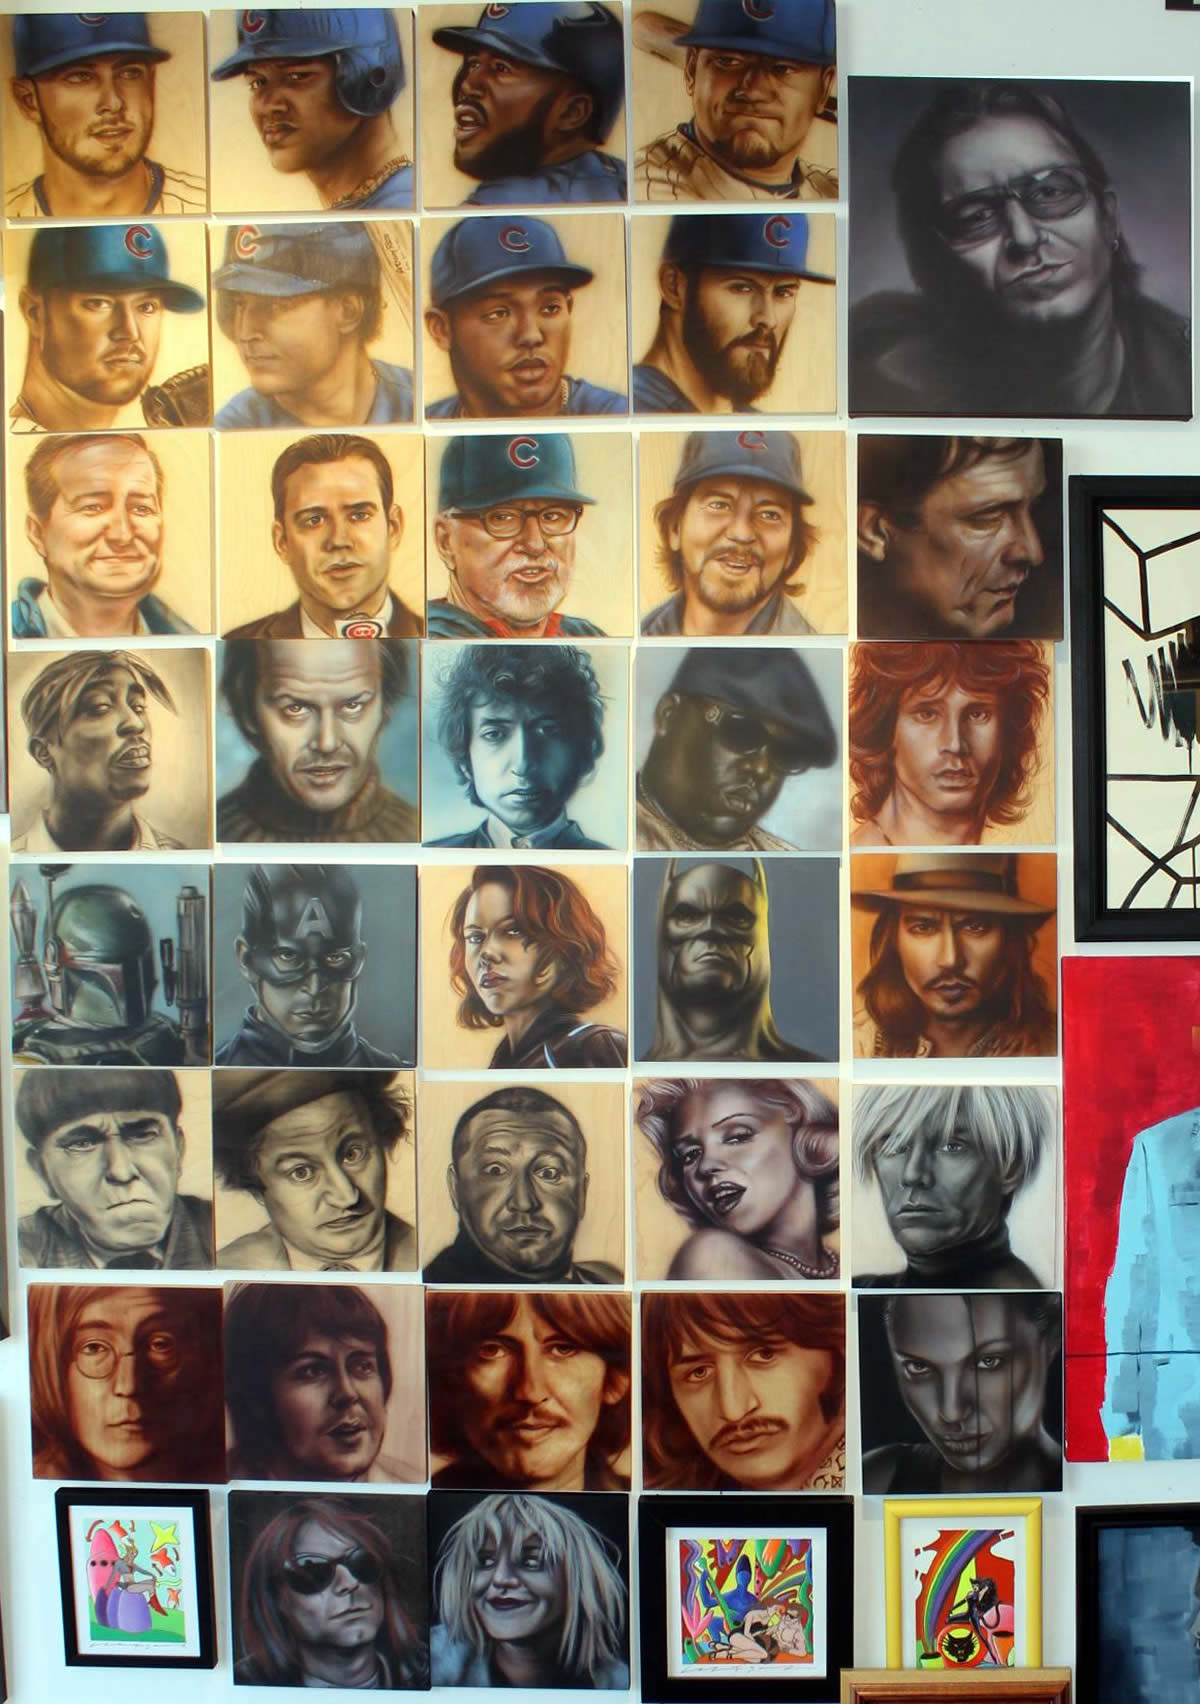 Ben Laskov original air brush portrait art wall at the david leonardis gallery